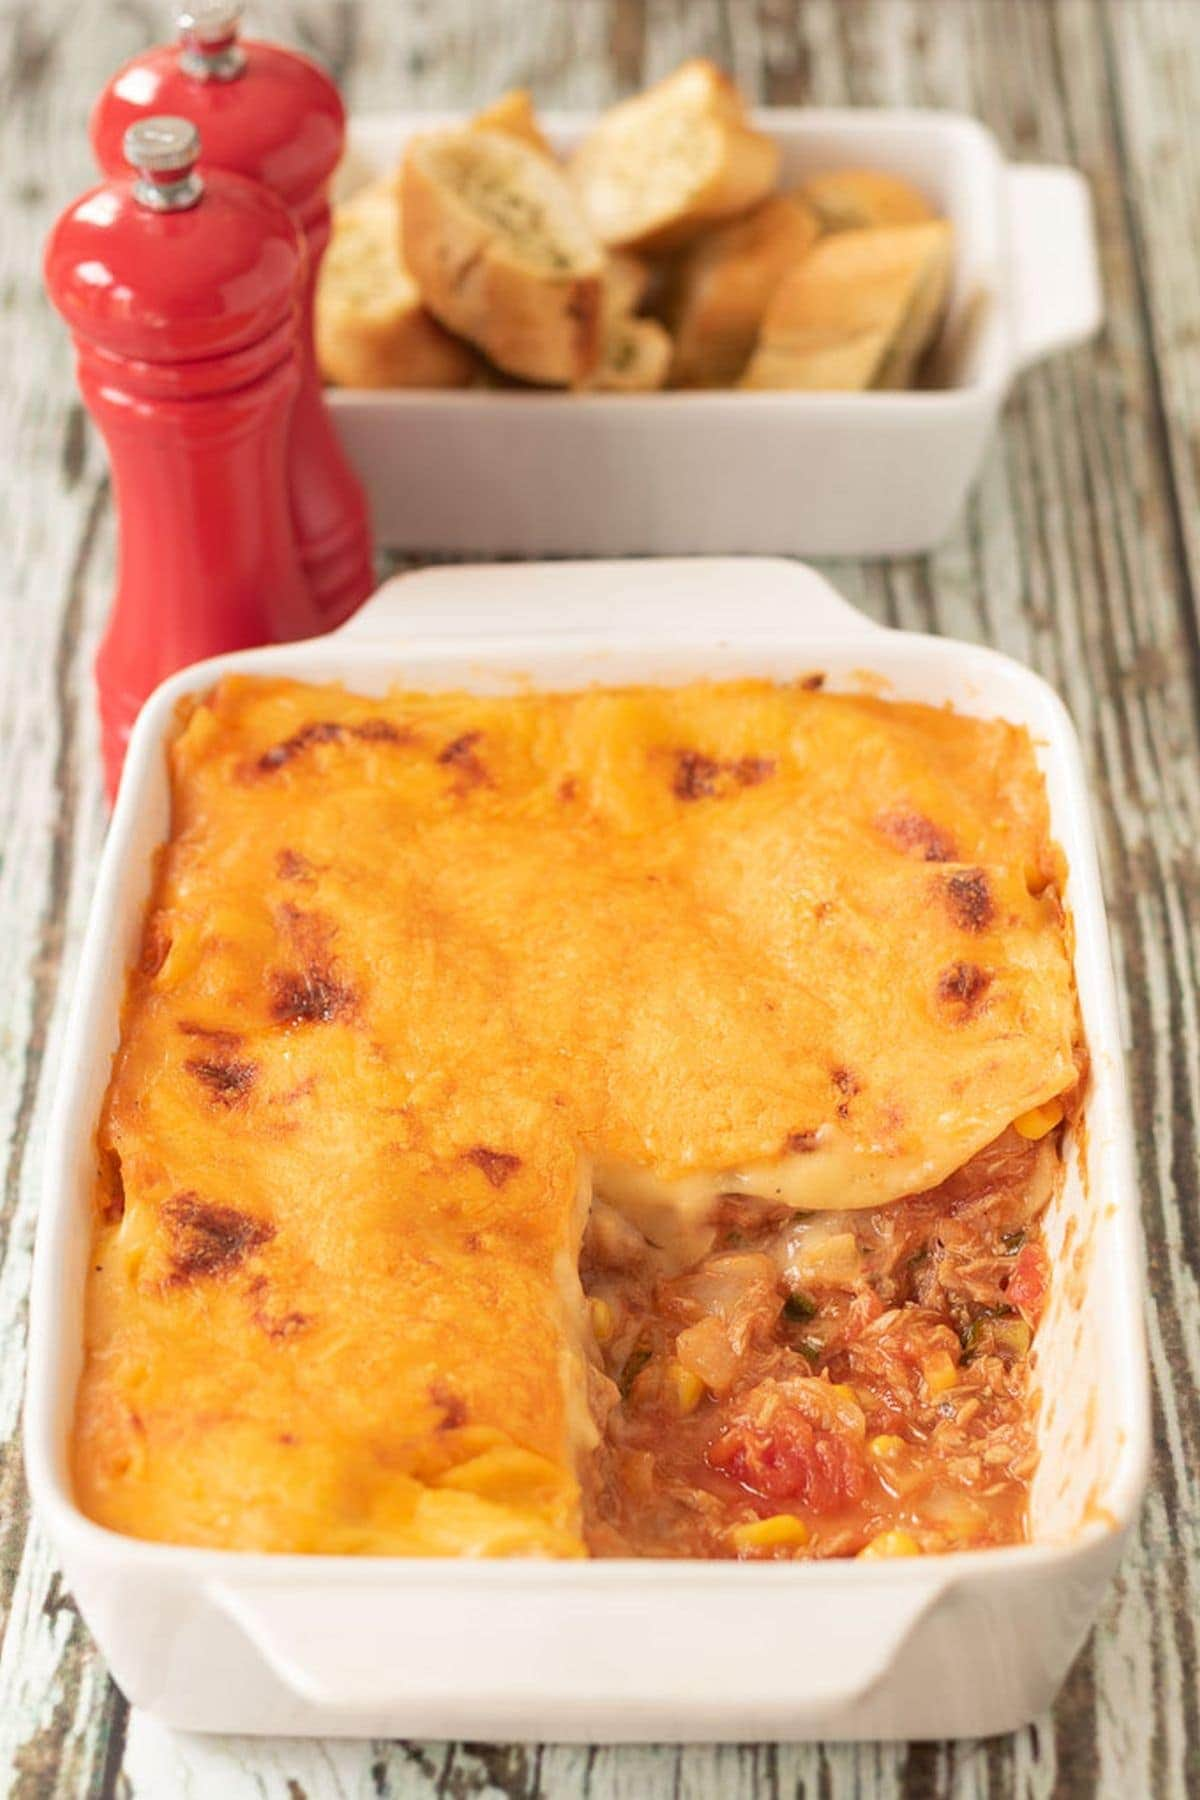 A casserole dish of tuna sweetcorn lasagne with a portion removed. Salt and pepper cellars and a bowl of garlic bread in the background.